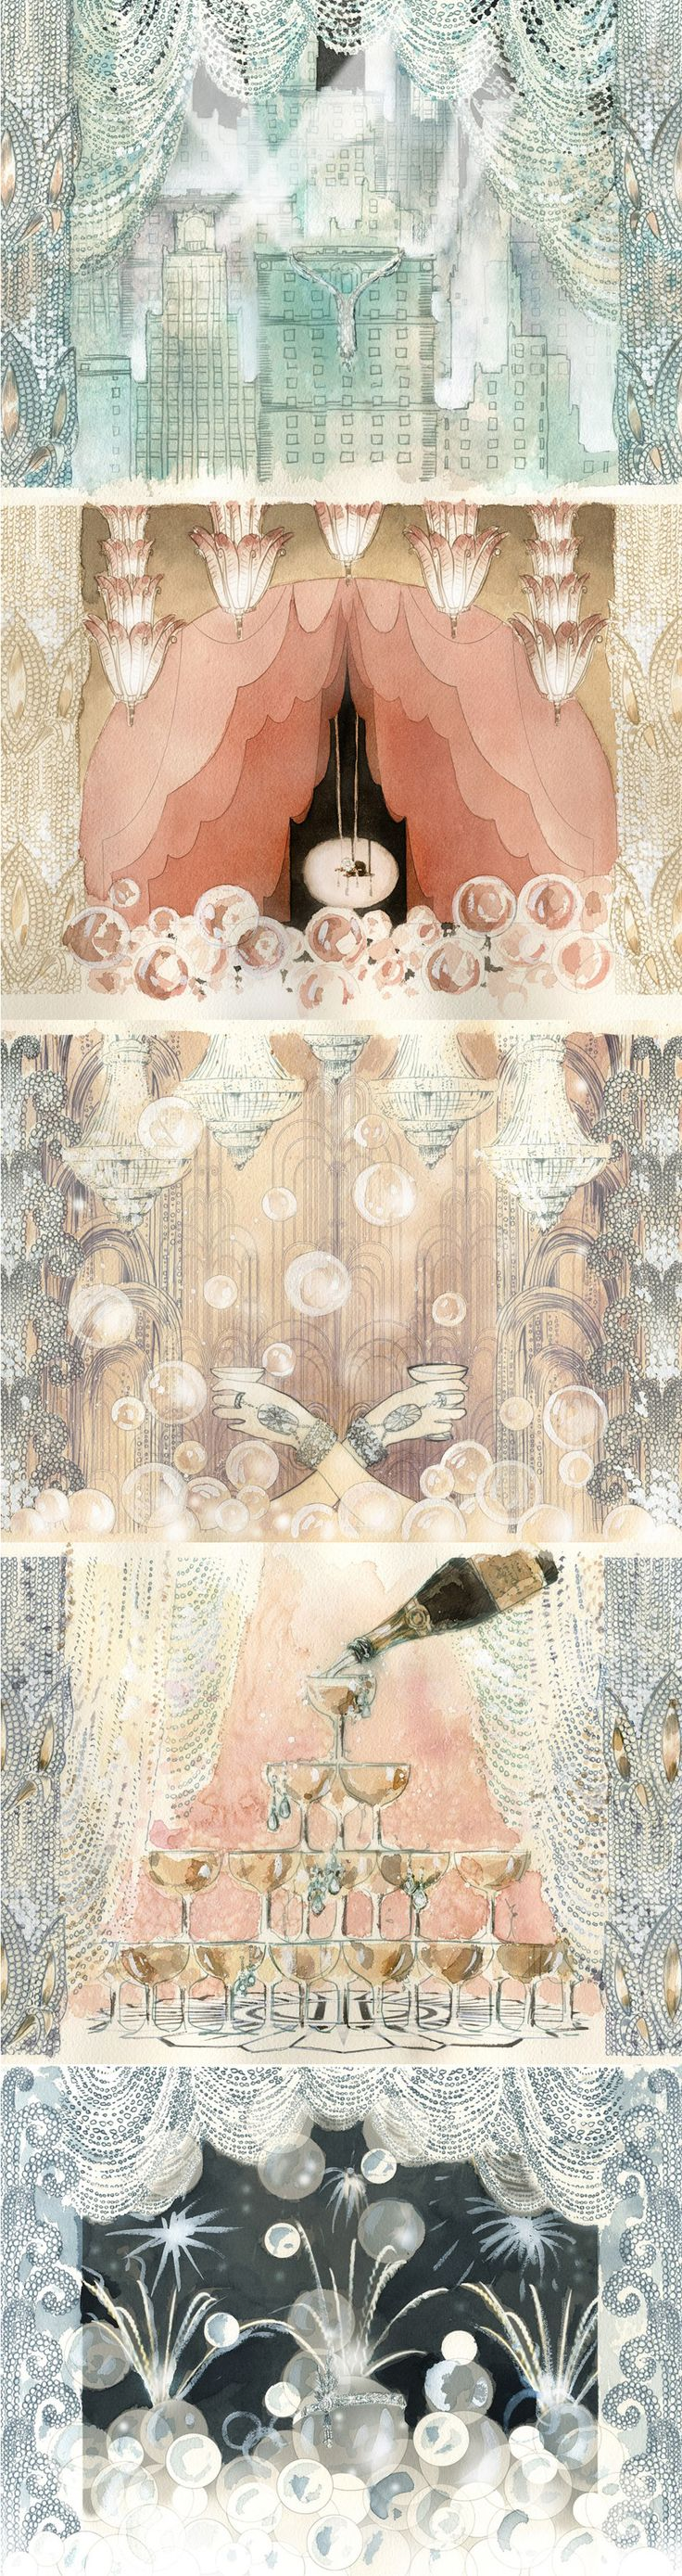 """Tiffany and VM sketches for the new window display in NYC , inspirations from """"The Great Gatsby"""" film"""